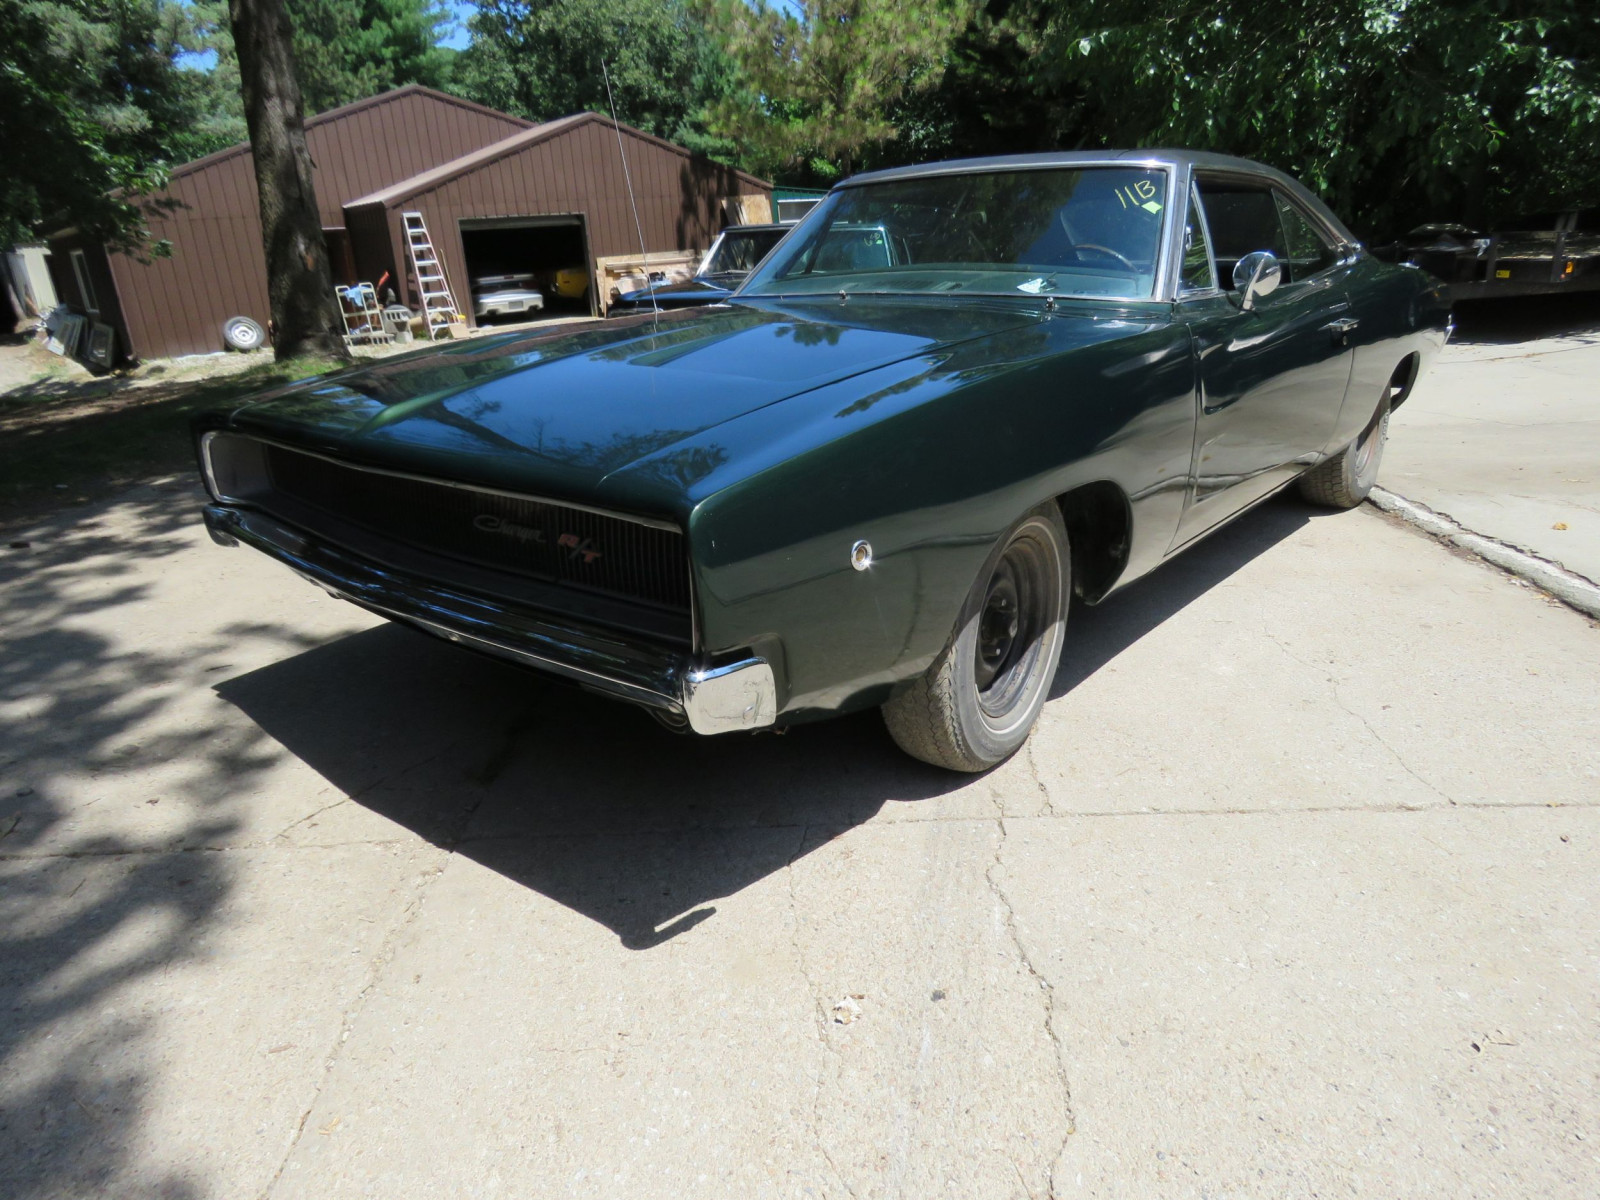 1968 Dodge Charger 2dr HT Coupe - Image 3